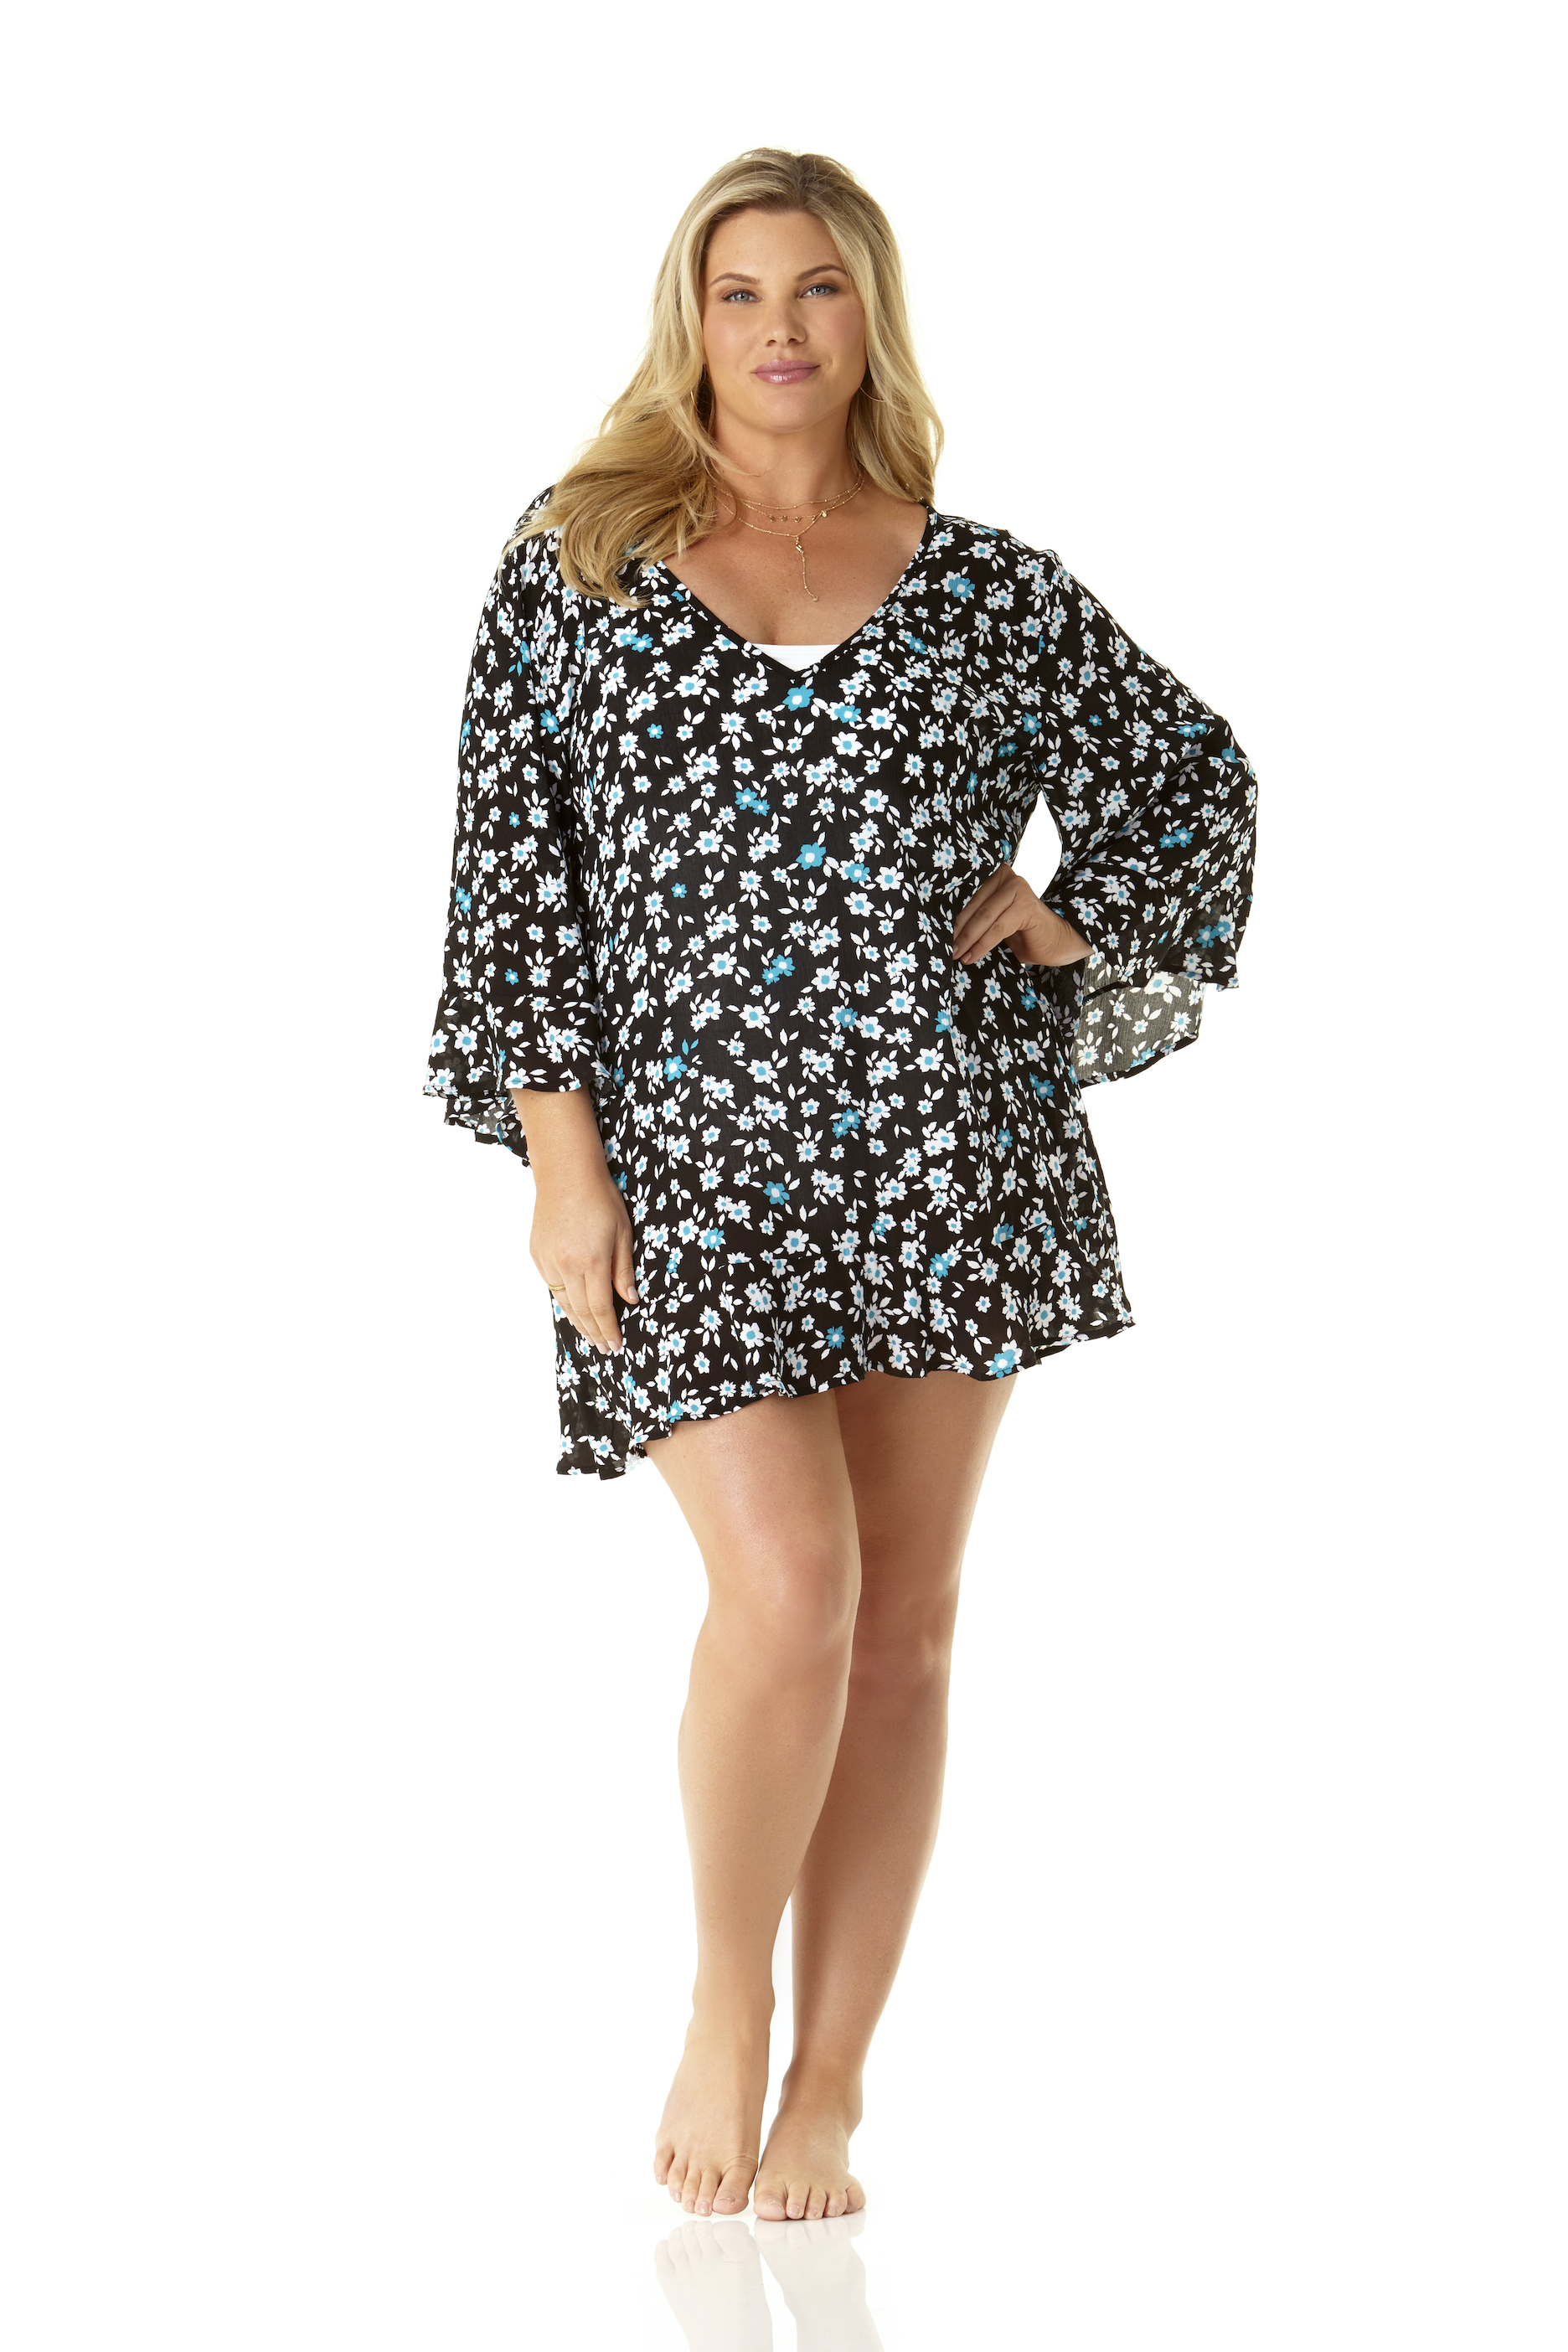 Anne Cole® Beautiful Bunches Tunic Swimsuit Cover-Up - Plus -Multi - Front